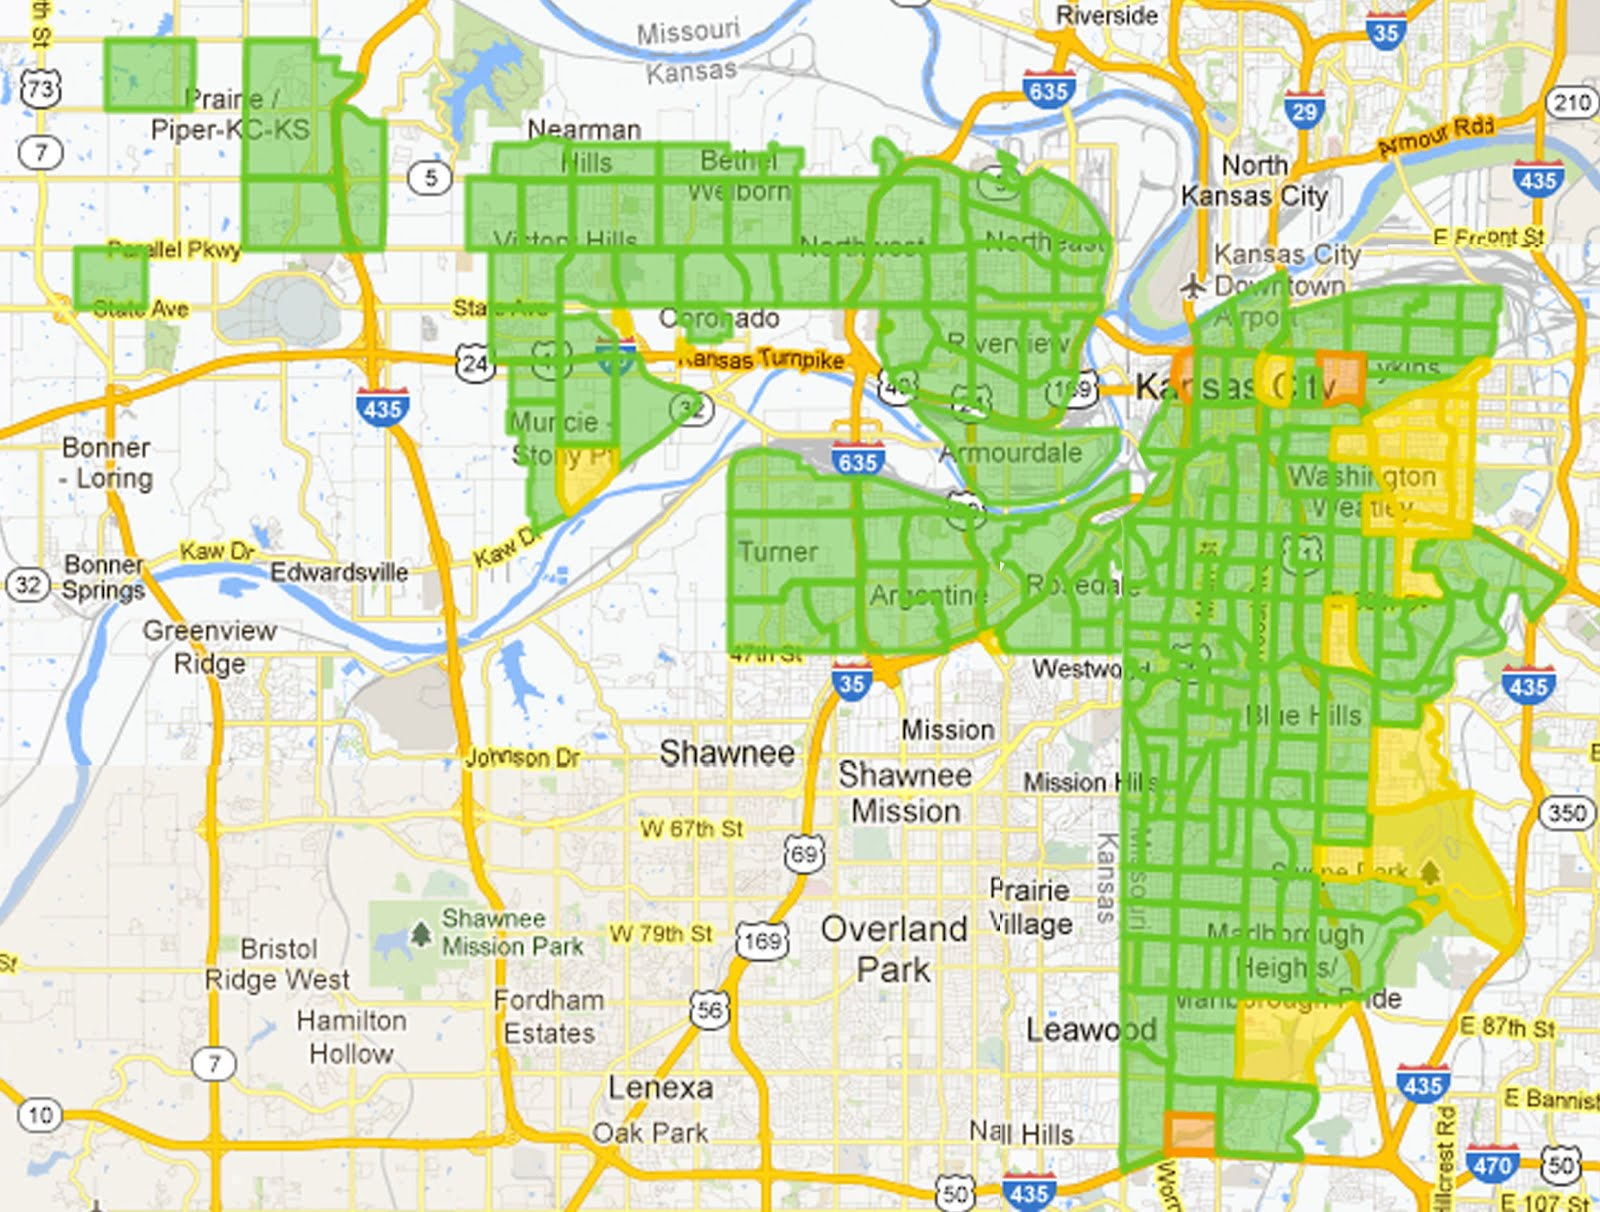 Google Fiber Blog: Congratulations, Kansas City!